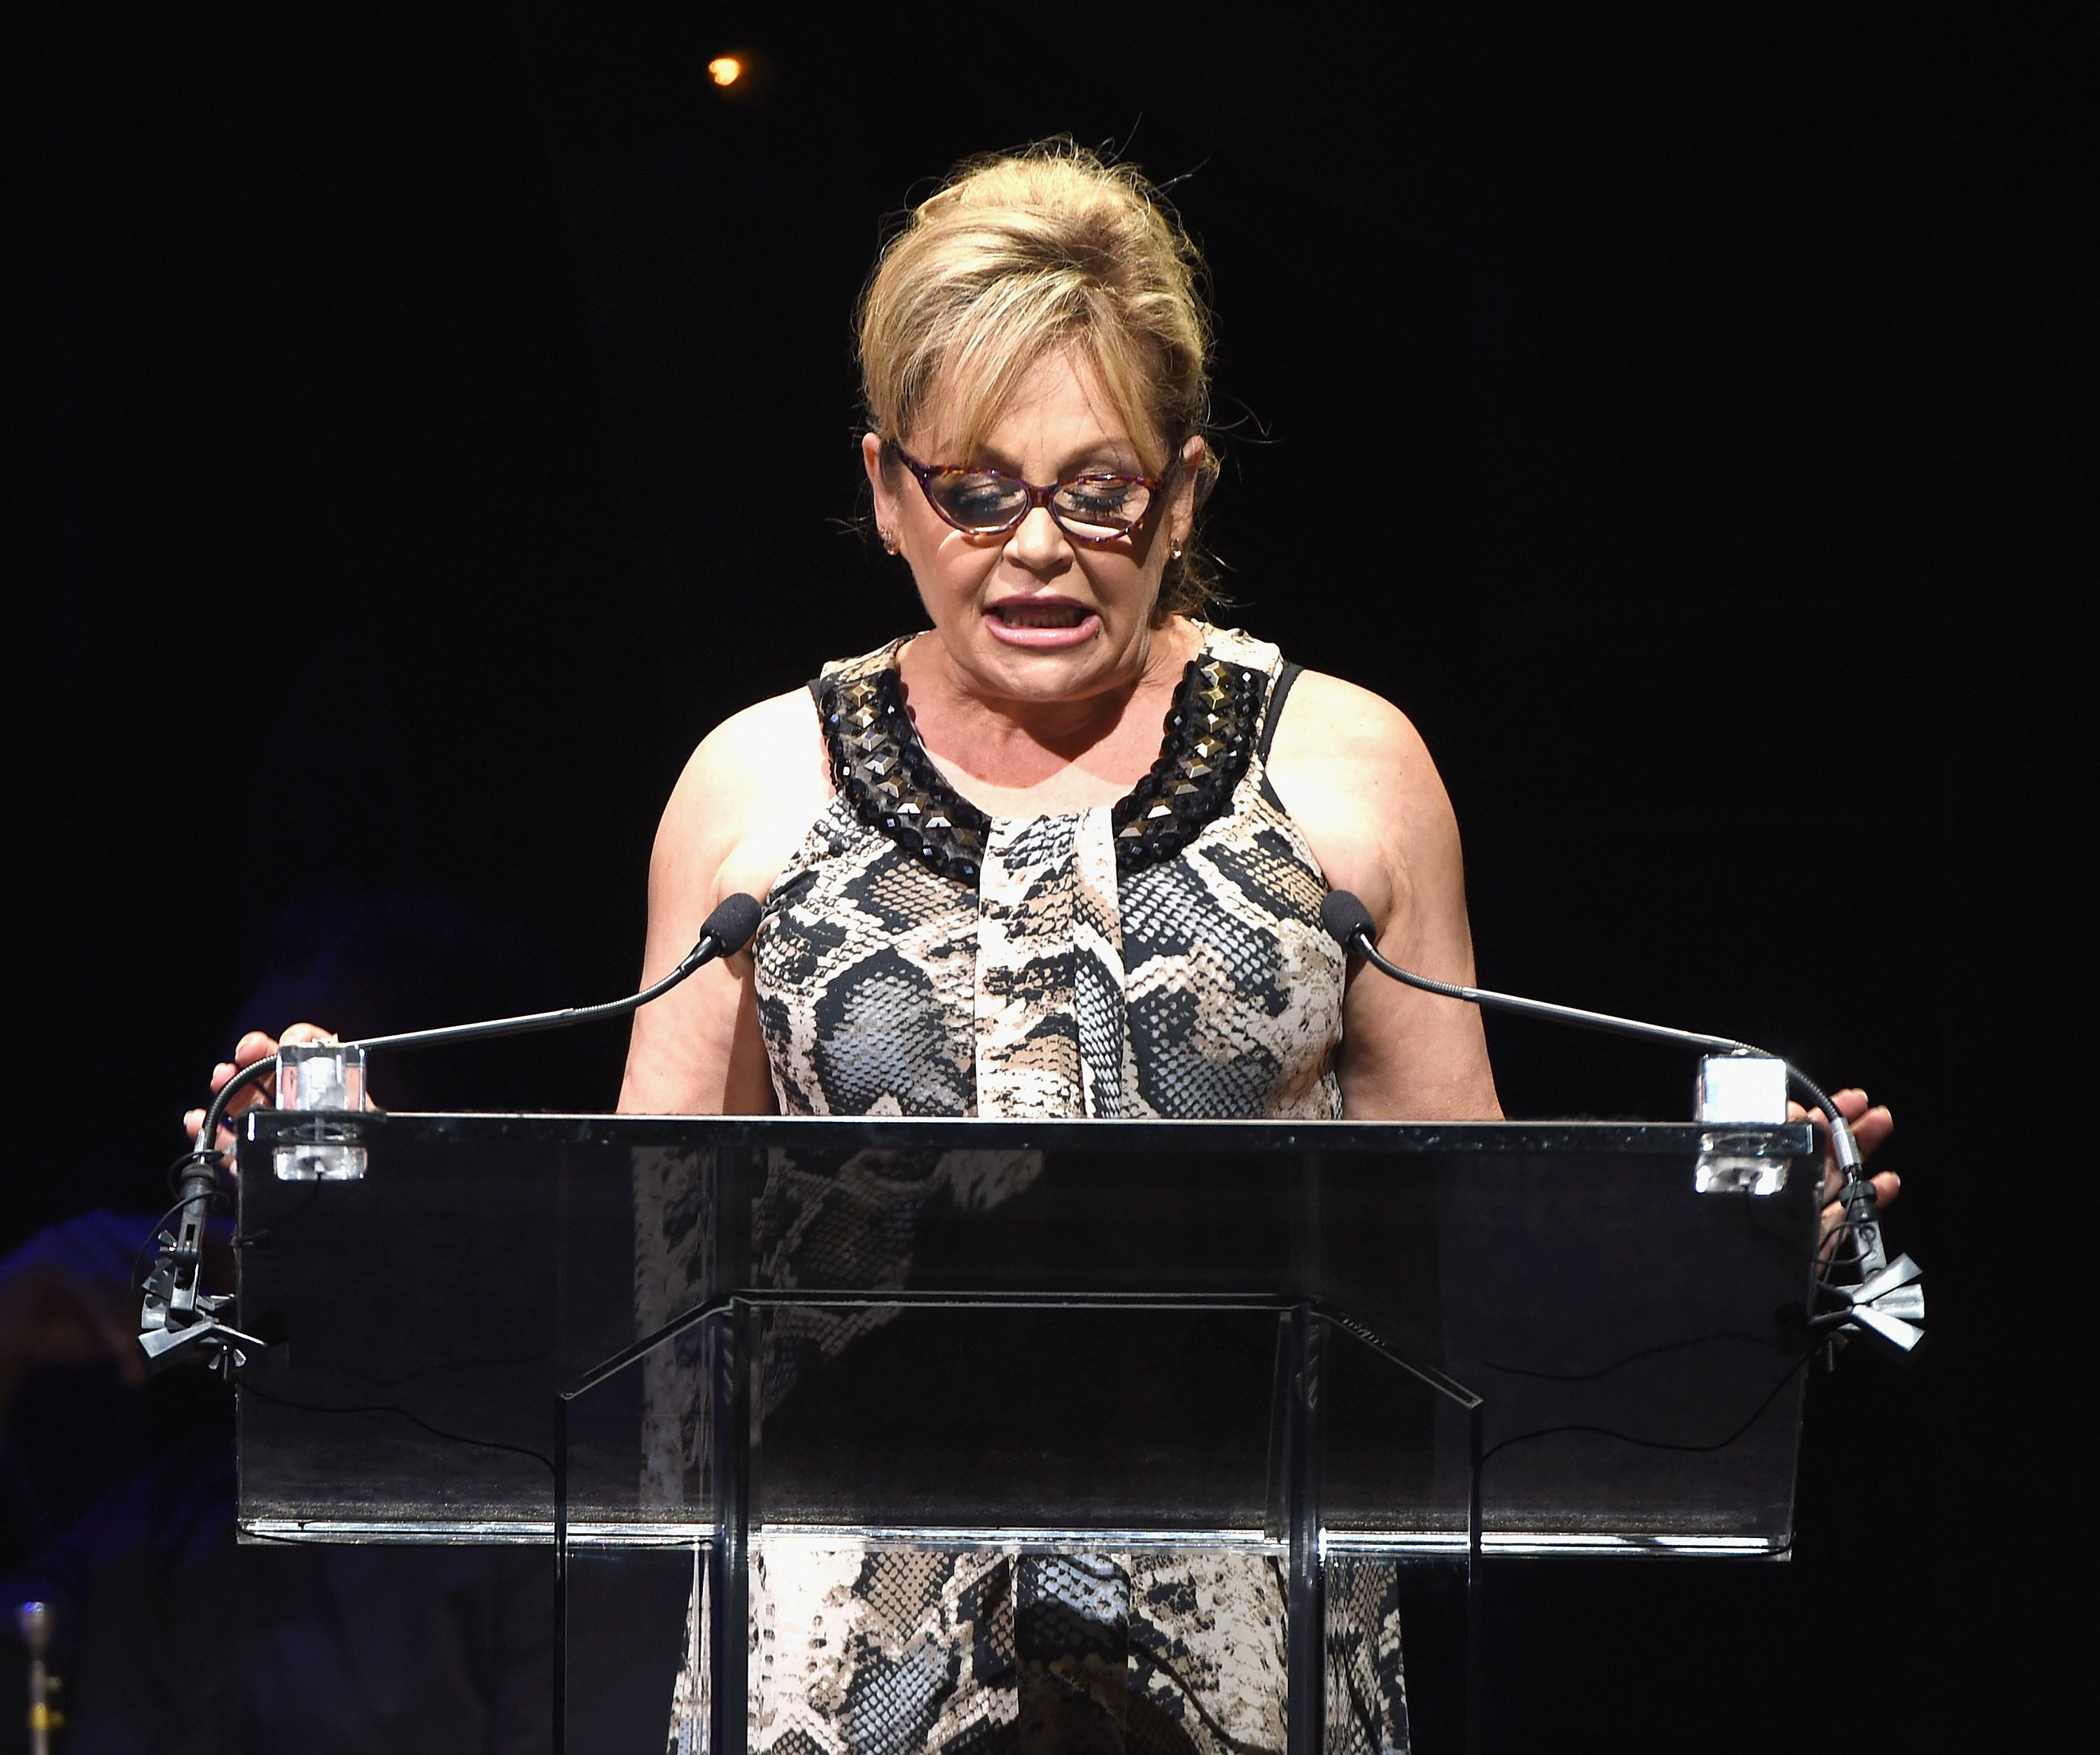 Charlene Tilton speaks onstage during Voices for the Voiceless in New York City on June 29, 2015 | Photo: Getty Images